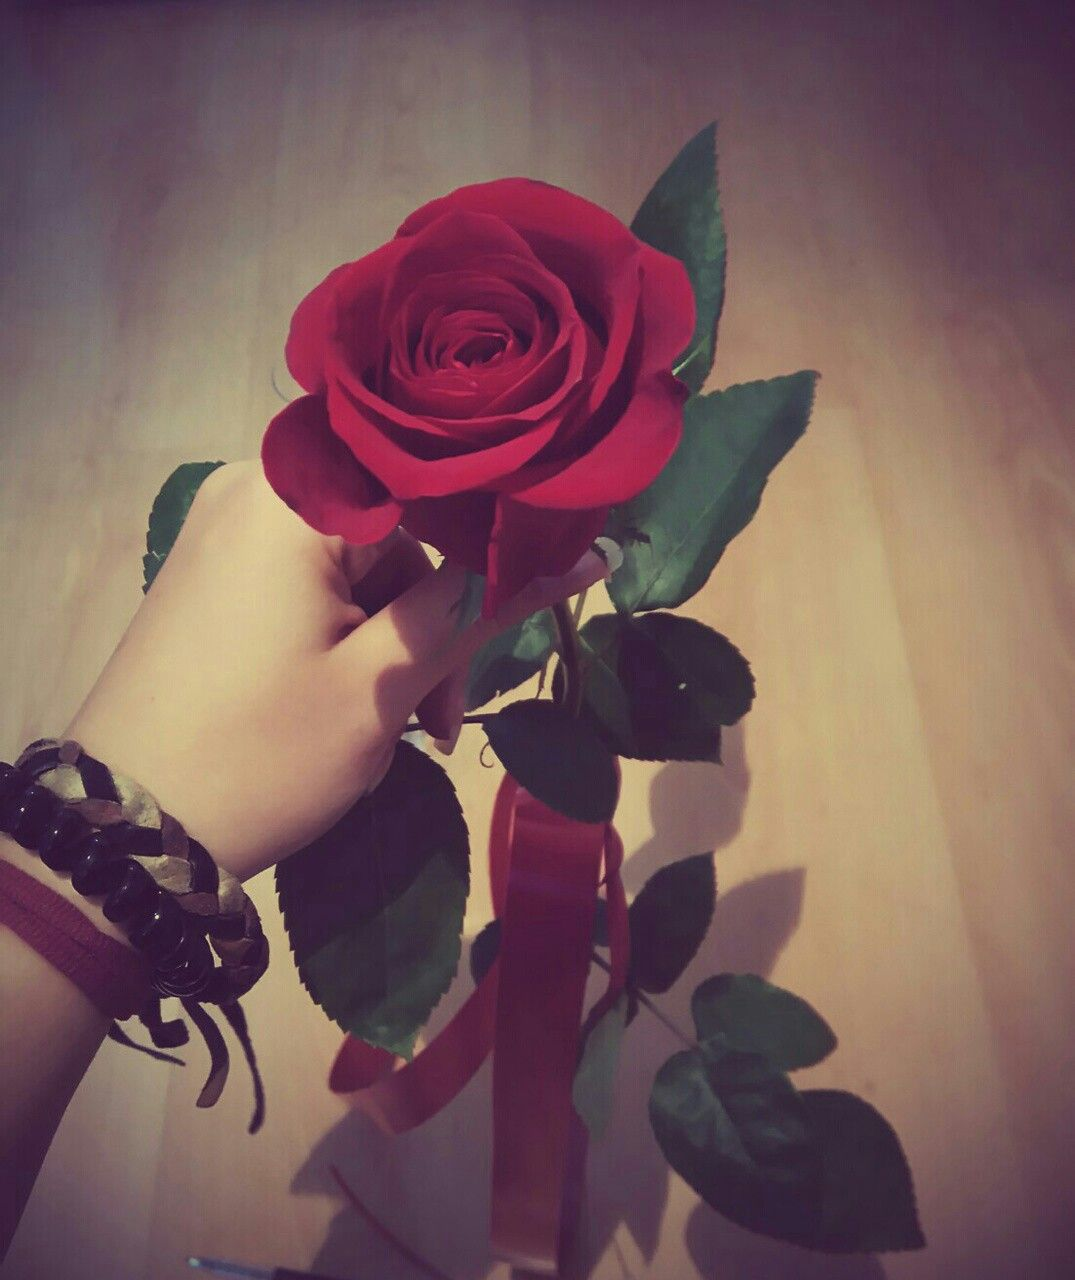 Pin By Sanashah On Dpzzzz Red Rose Flower Good Afternoon My Love Girls Hand